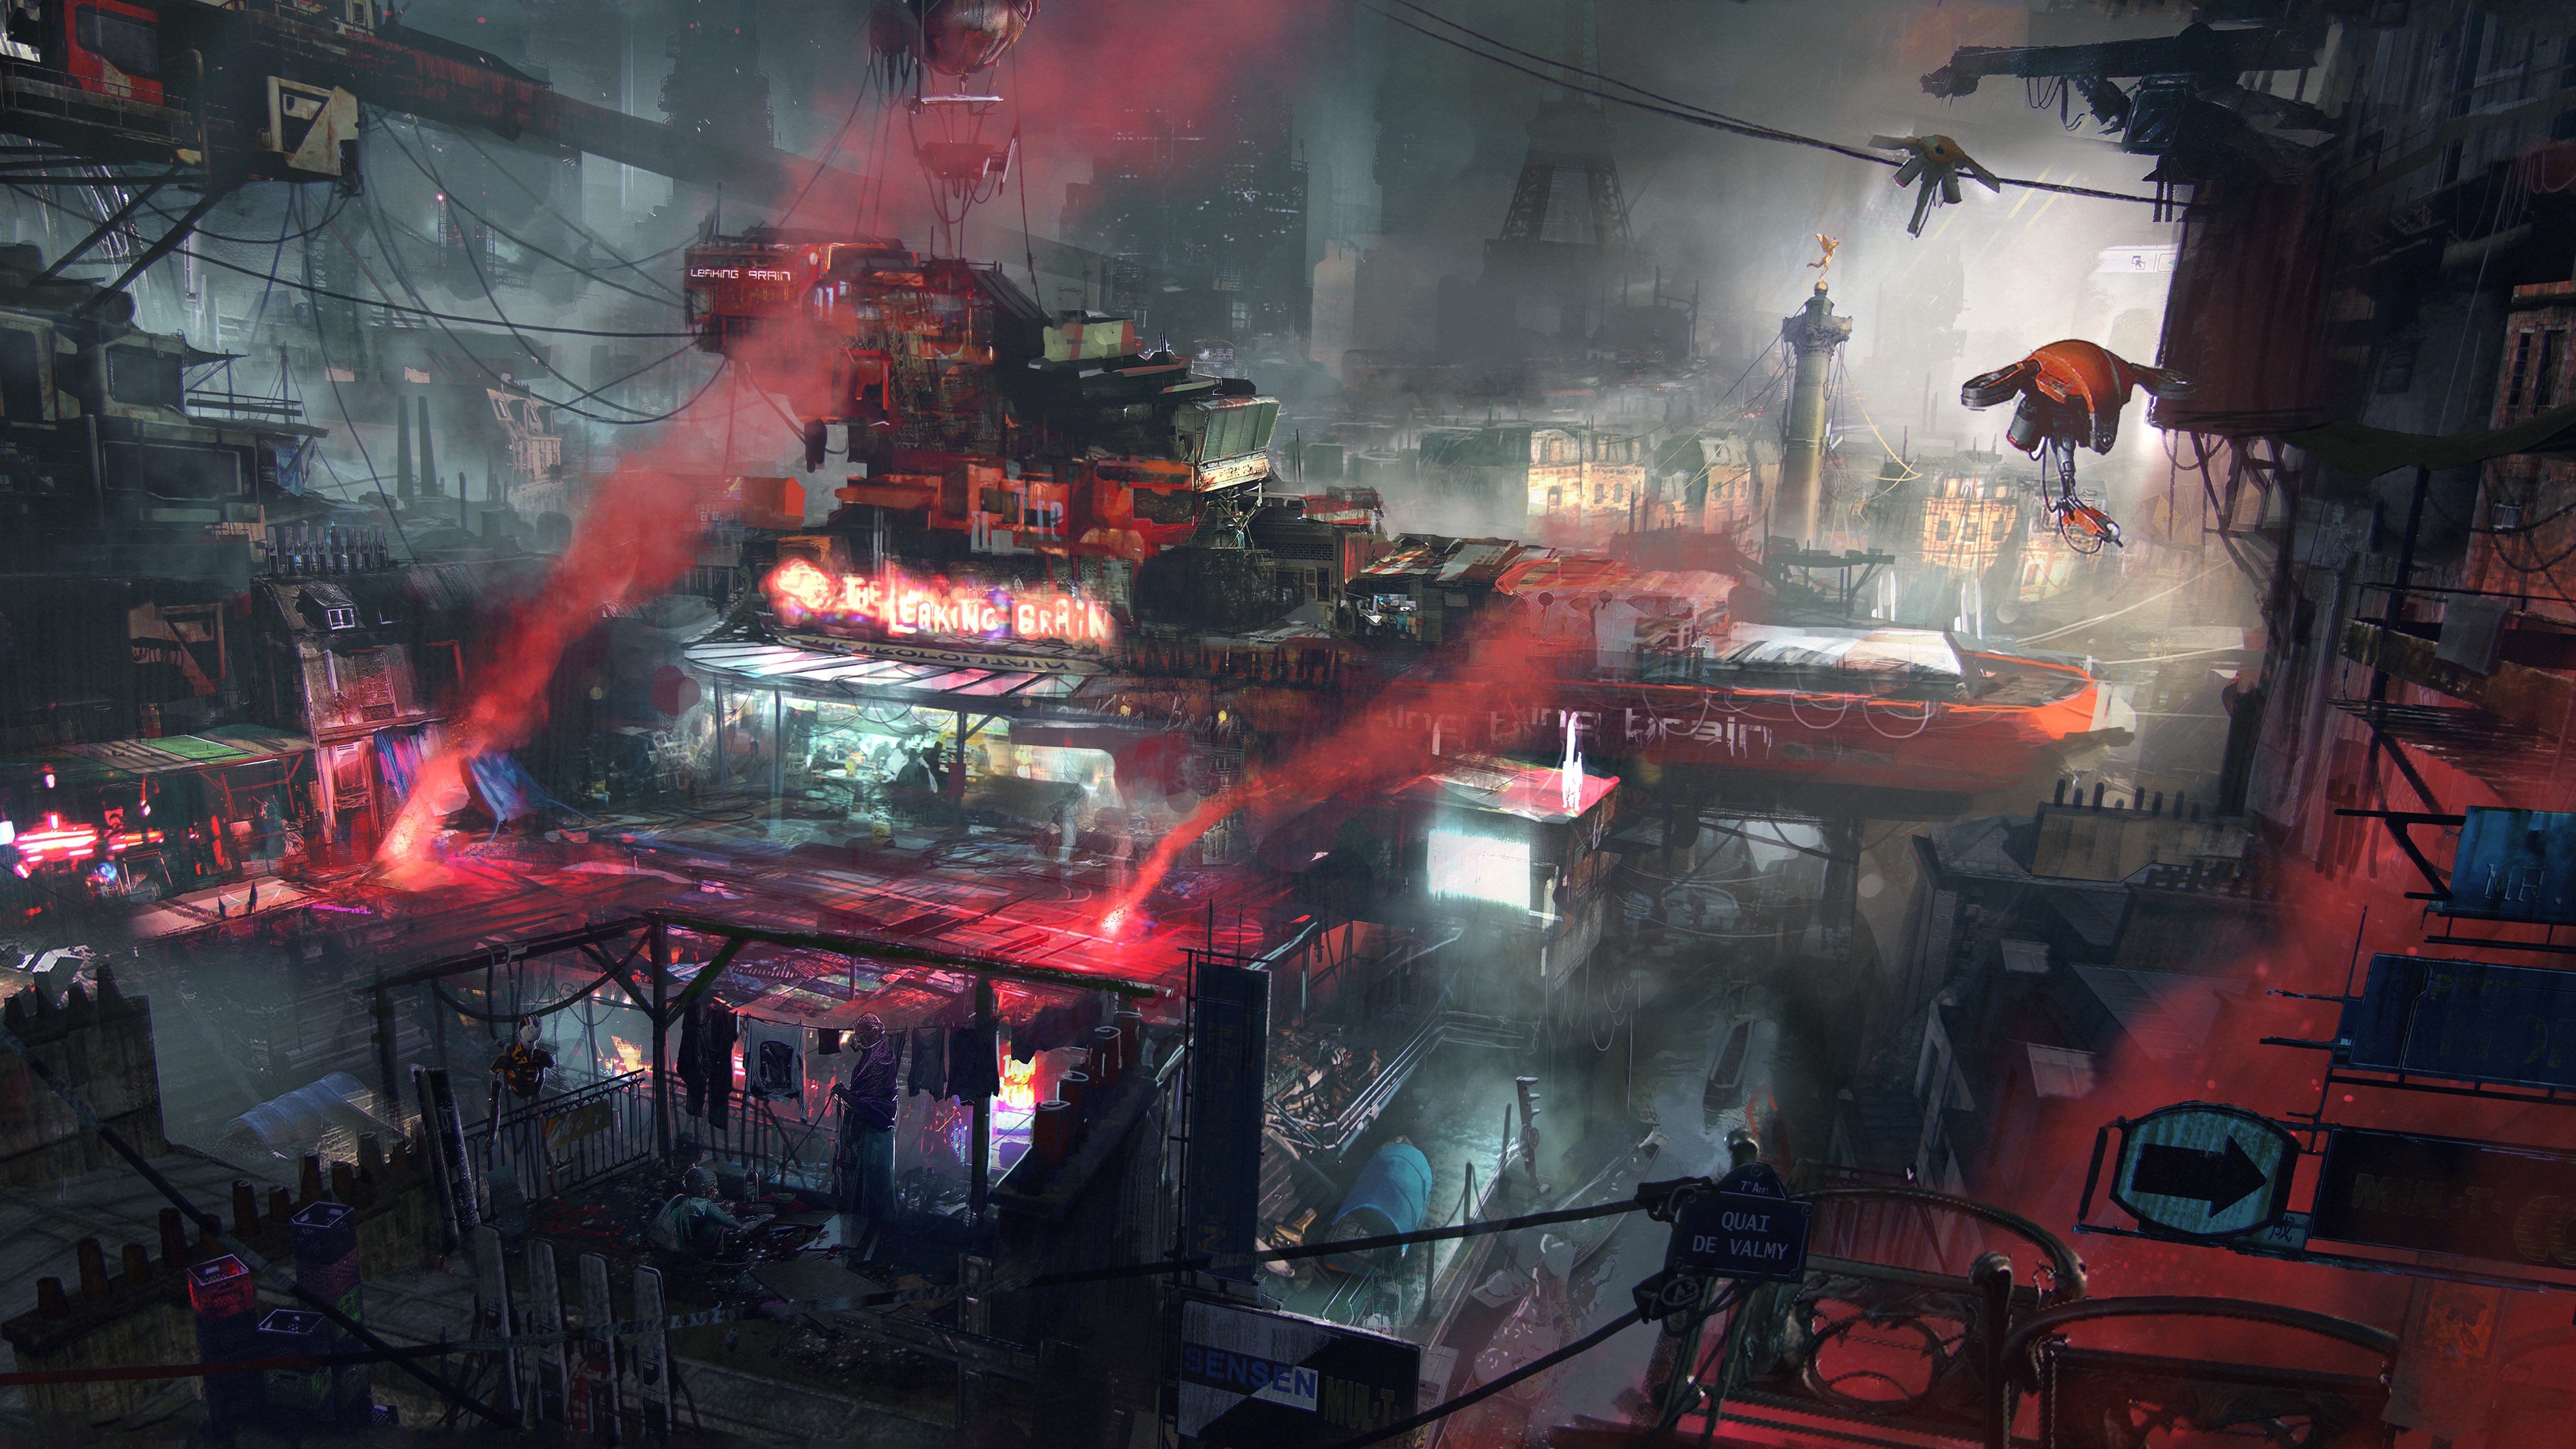 Cyberpunk City Ghetto Futuristic Hd Wallpapers